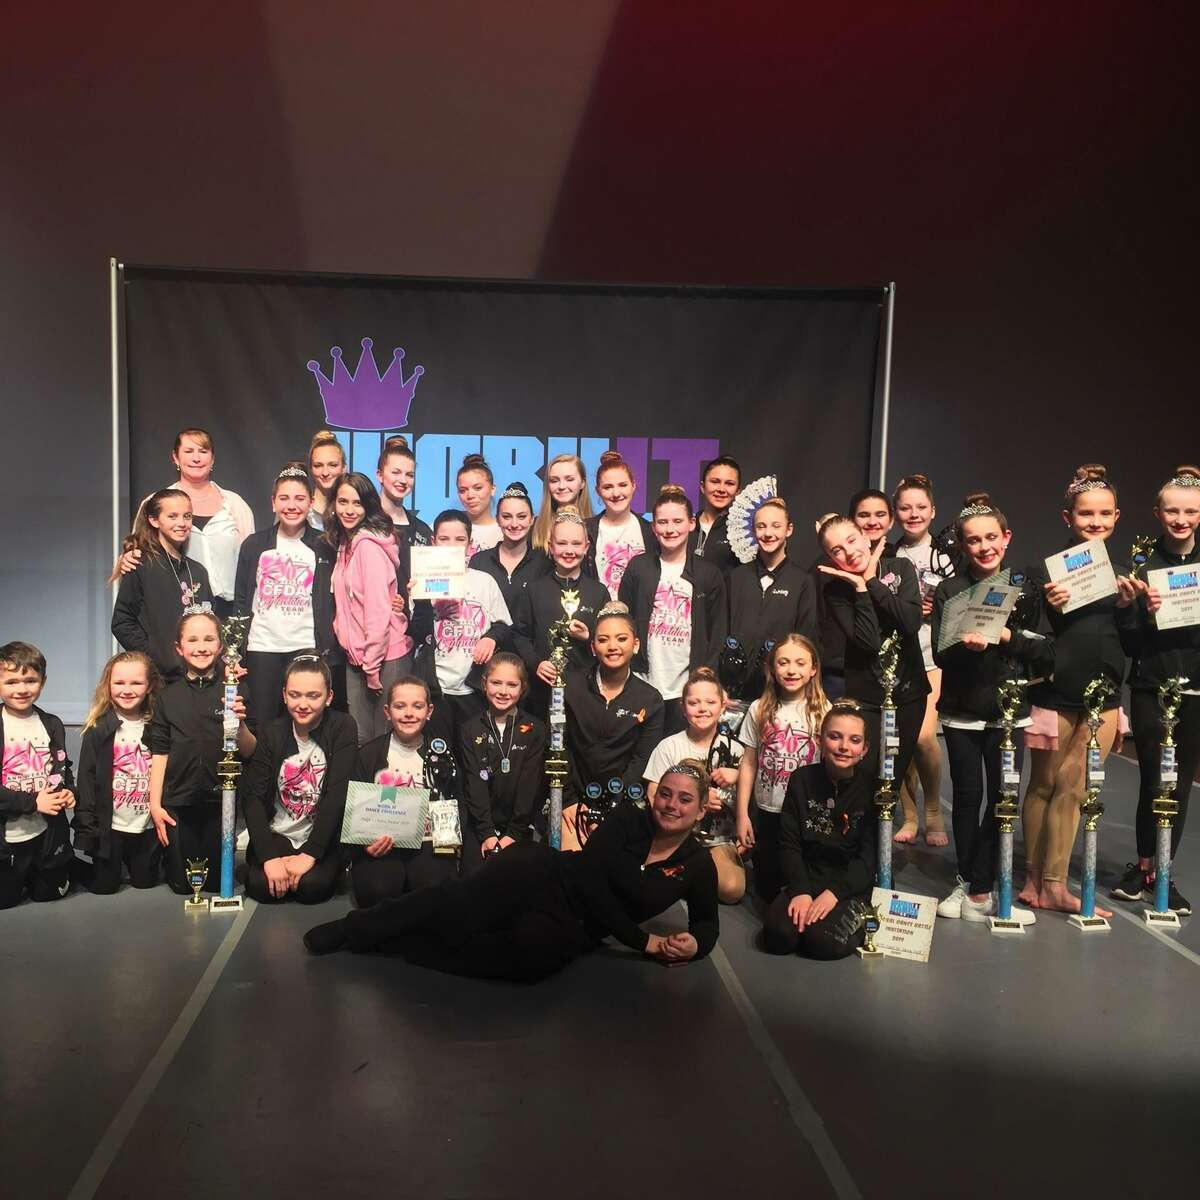 Students from the Center for Dance Arts in Torrington gather for a photo after their 2019 competition. The dance school reopened in June after the pandemic March shutdown, but owner Yvonne Donaghy says it's been a difficult challenge providing lessons for her students while complying with the state's restrictions and constant changes.